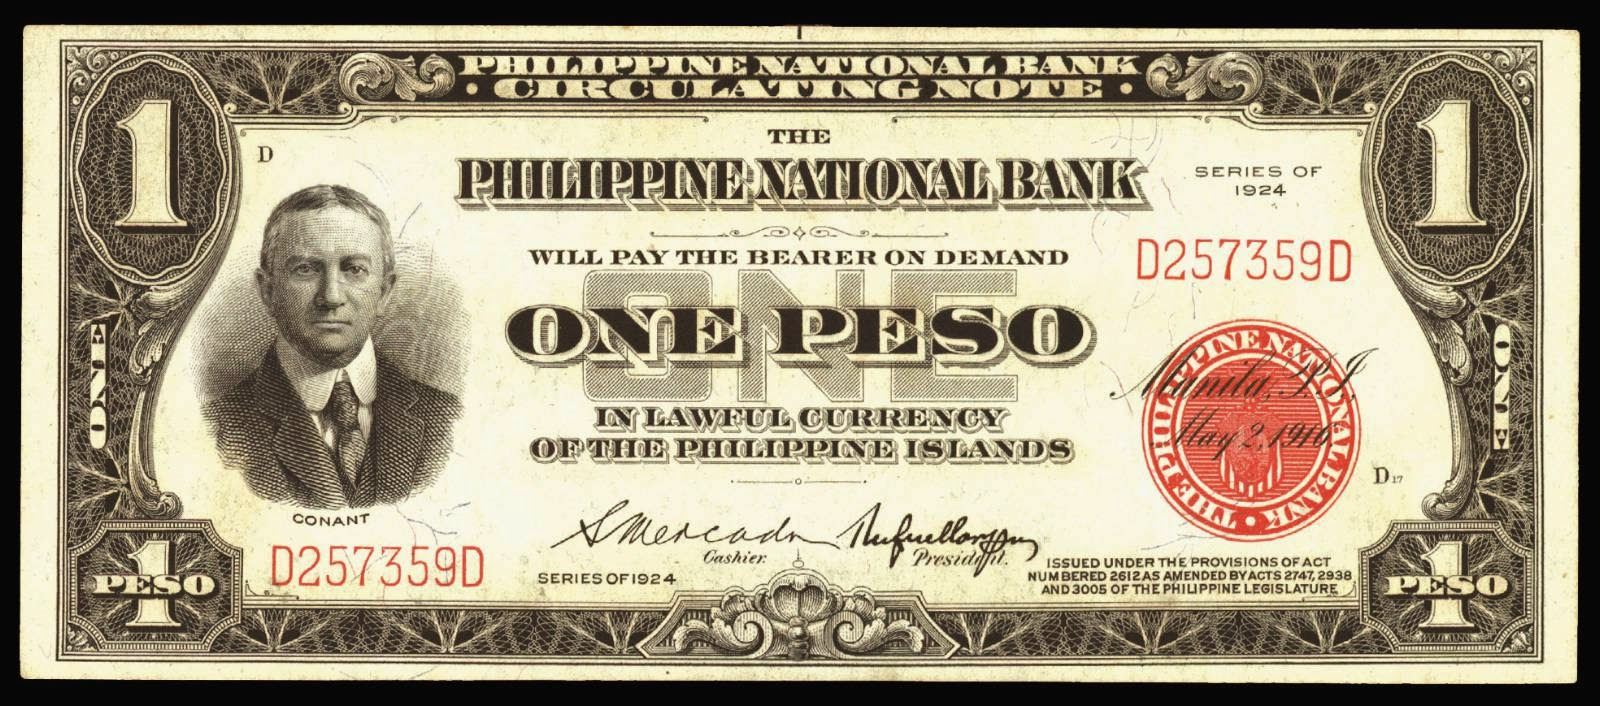 Philippines banknotes One Peso bill Circulating Note 1924 Conant